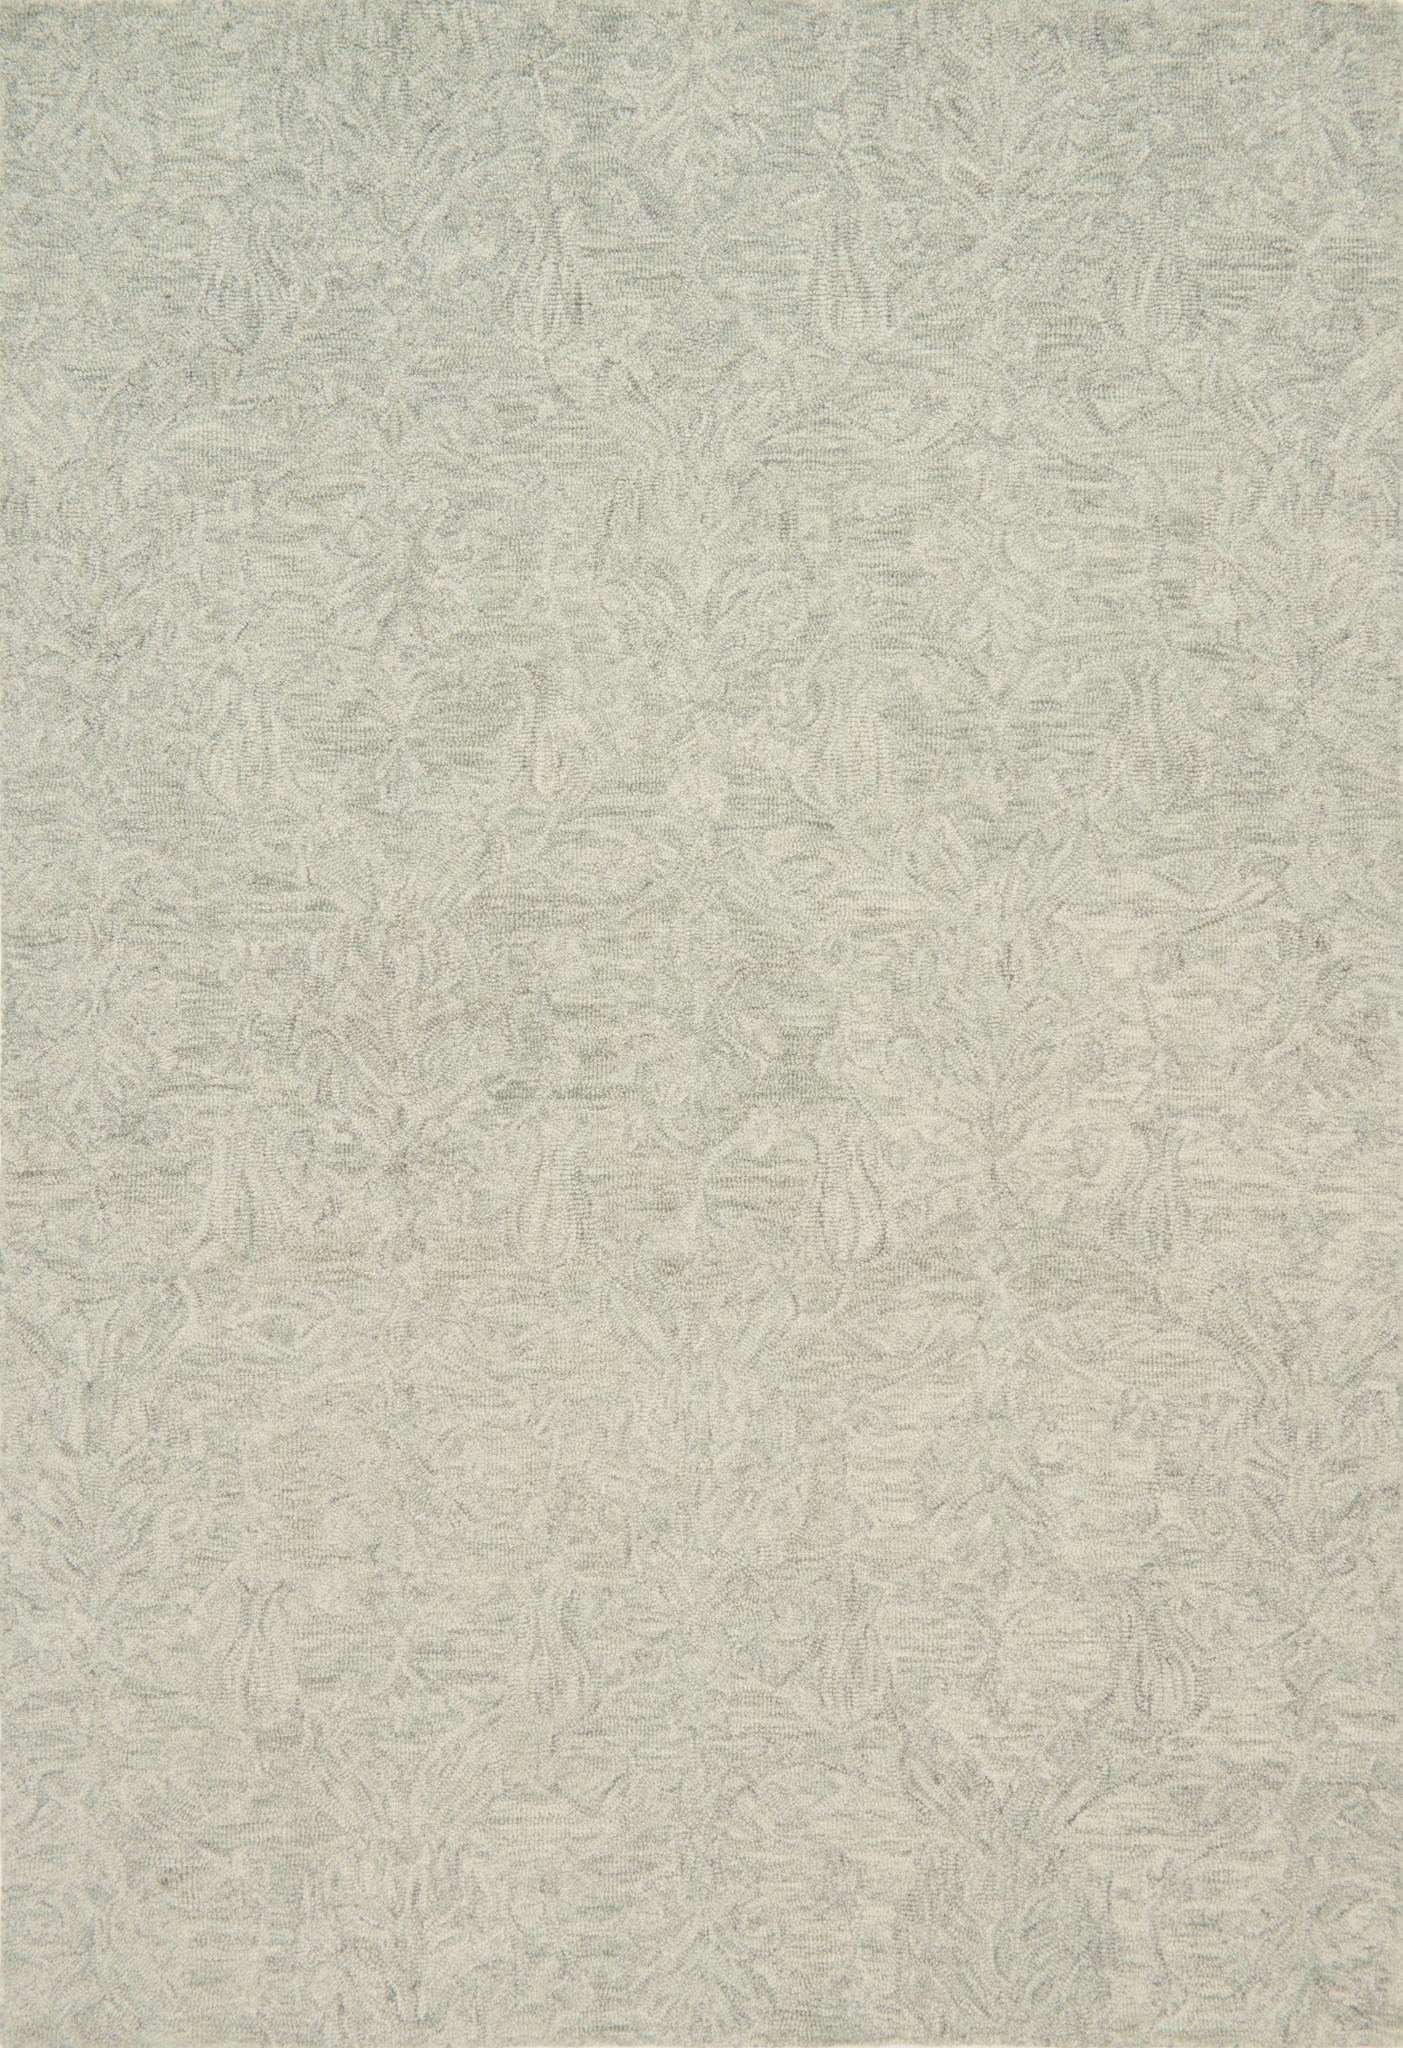 LOLOI RUGS GRAY LYLE LK 04 HOOKED 100